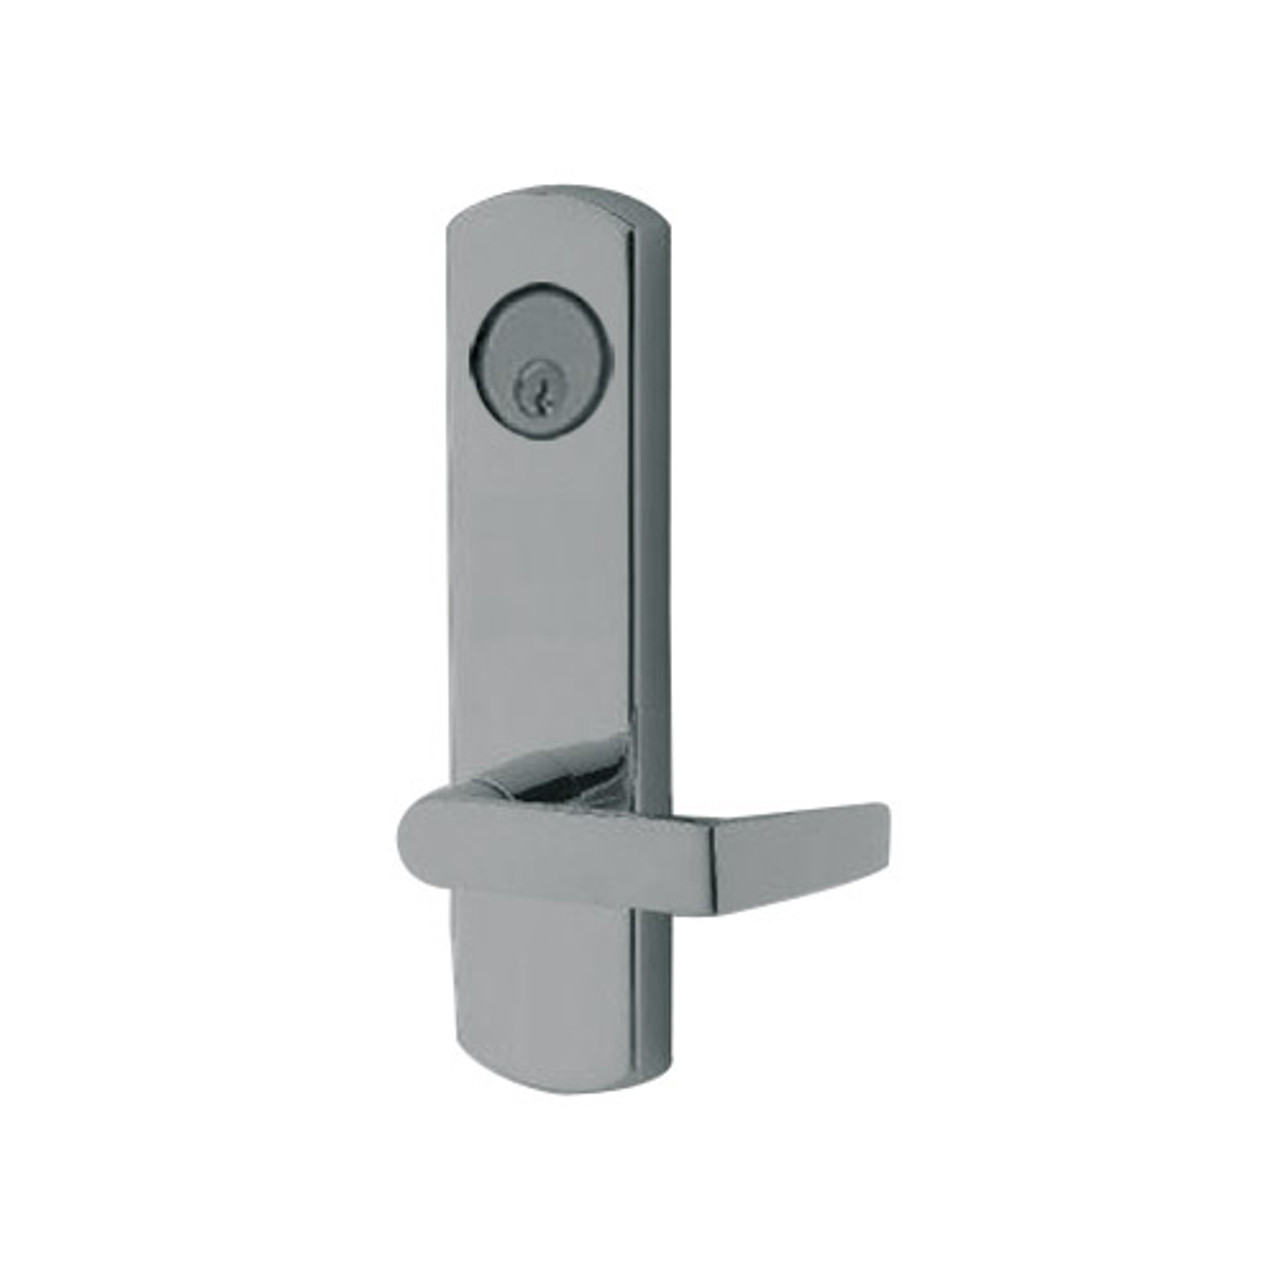 3080E-03-0-93-30 US32D Adams Rite Electrified Entry Trim with Square Lever in Satin Stainless Finish